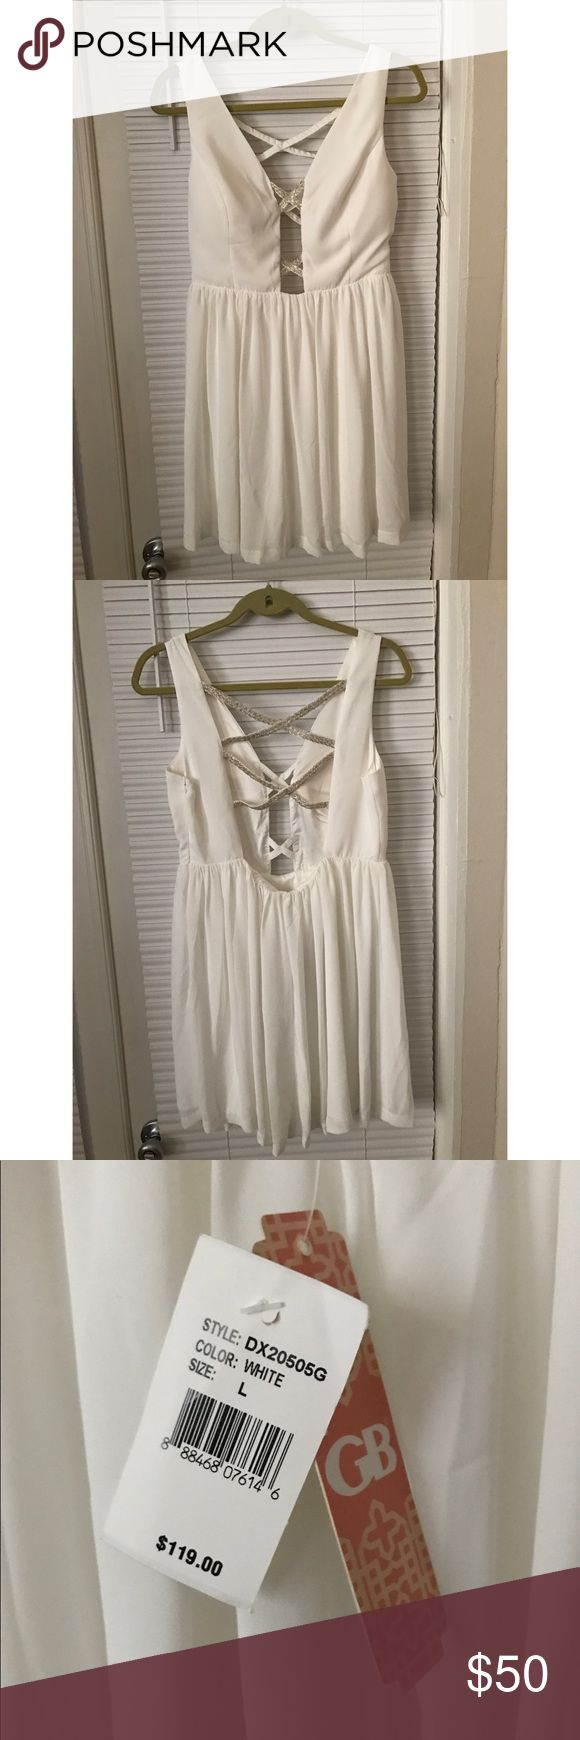 Selling this Gianni Bini Junior White Dress on Poshmark! My username is: tpnavywife. #shopmycloset #poshmark #fashion #shopping #style #forsale #Gianni Bini #Dresses & Skirts